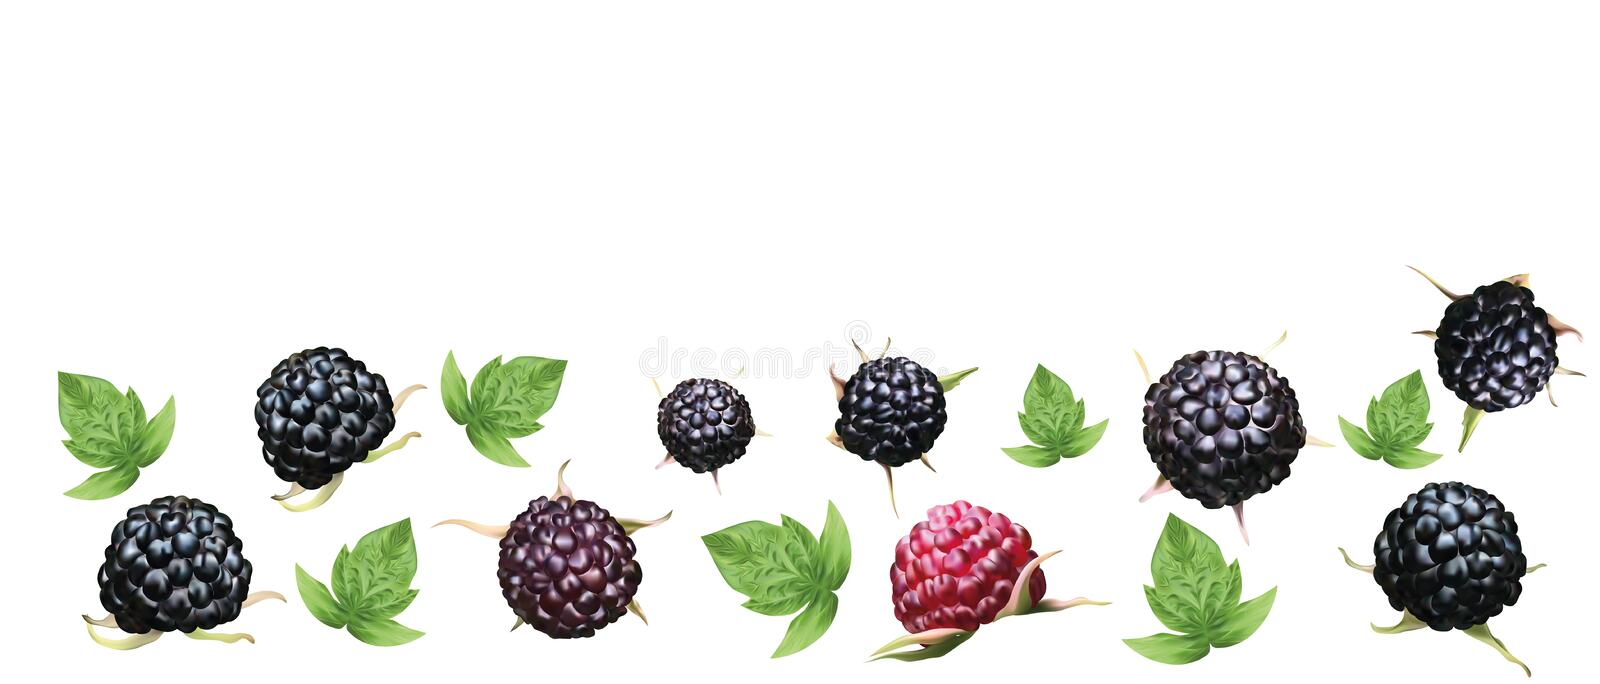 Fresh ripe blackberry with grren leaft isolated on white background. Summer berry closeup. 3D realistic black raspberry. With copy space for you text. Banner royalty free illustration